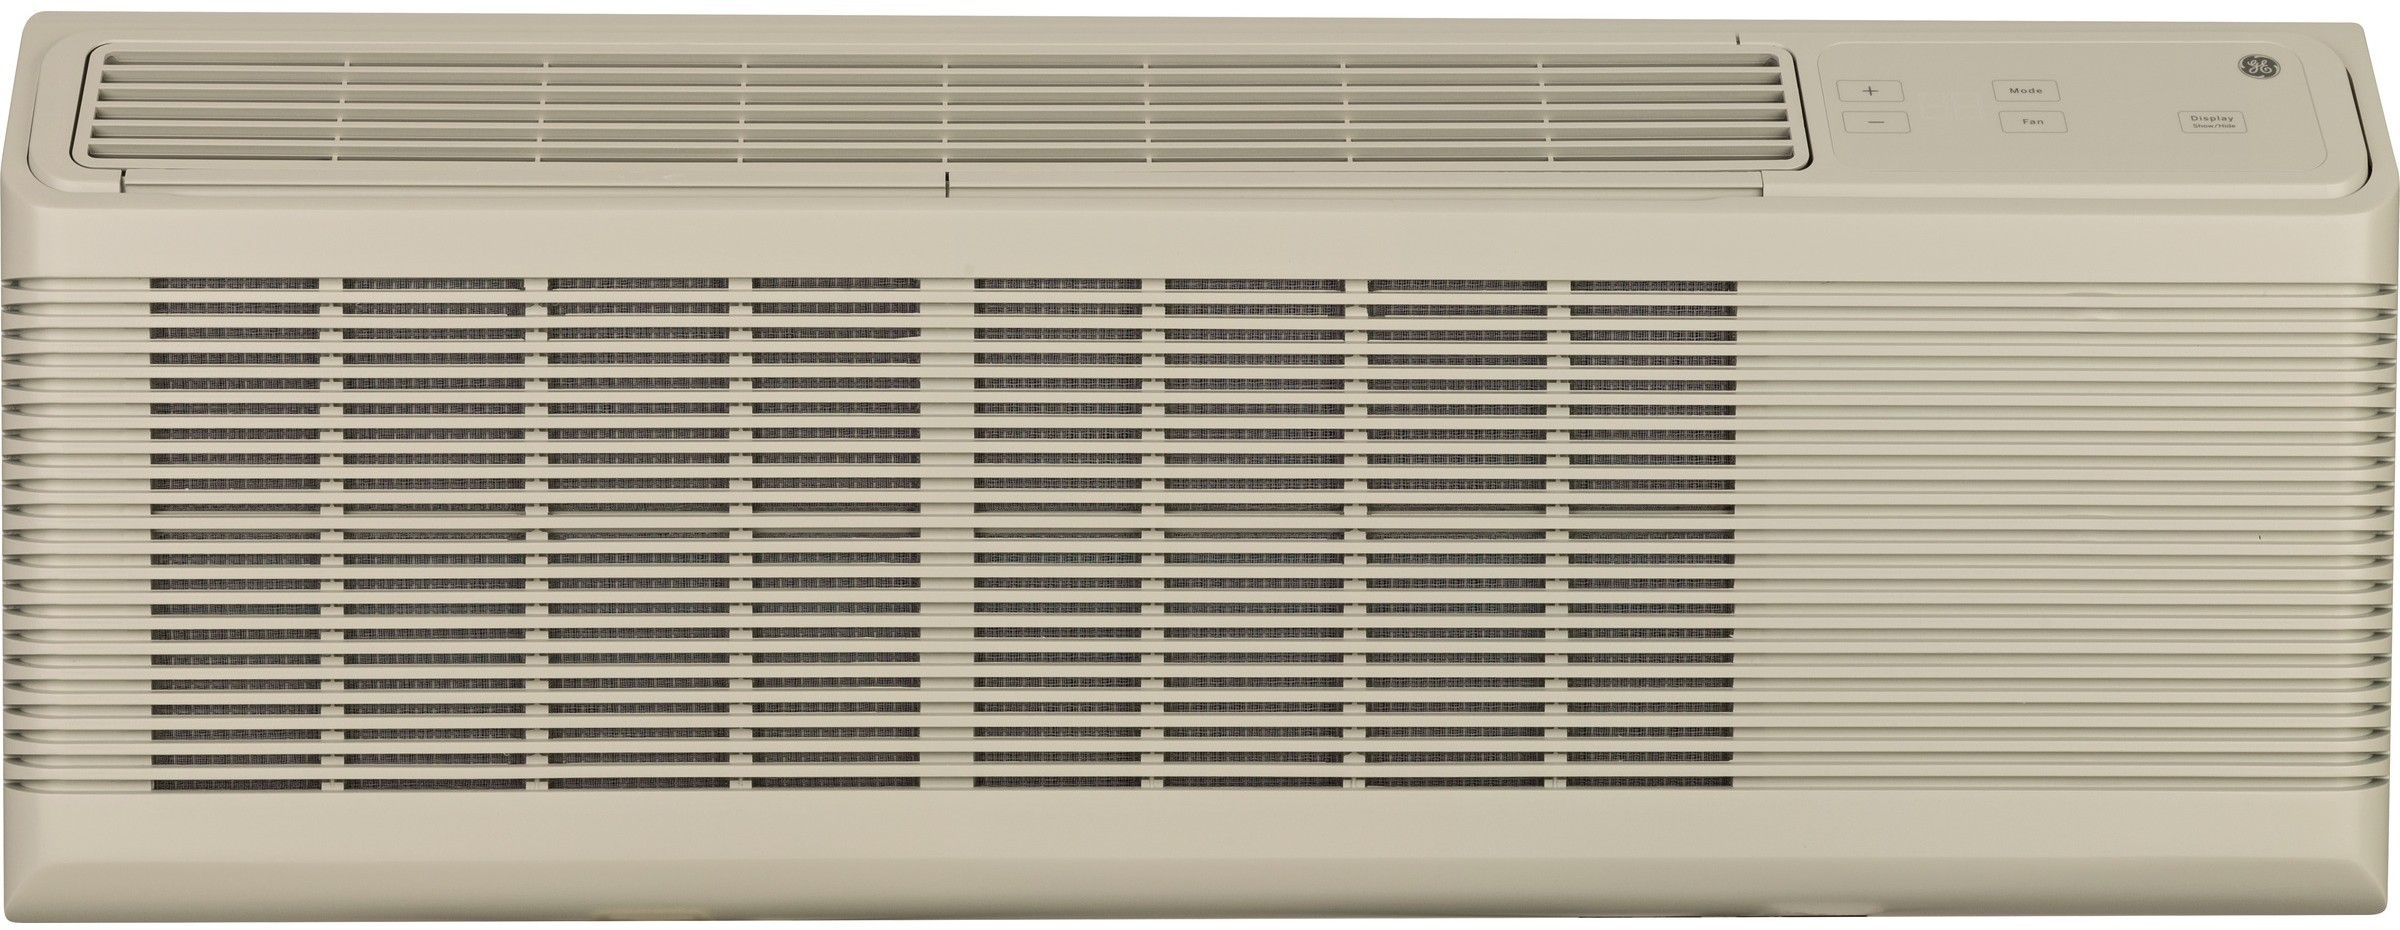 GE Zoneline Base 12,100 BTU Packaged Terminal Air Conditioner AZ65H12DAB